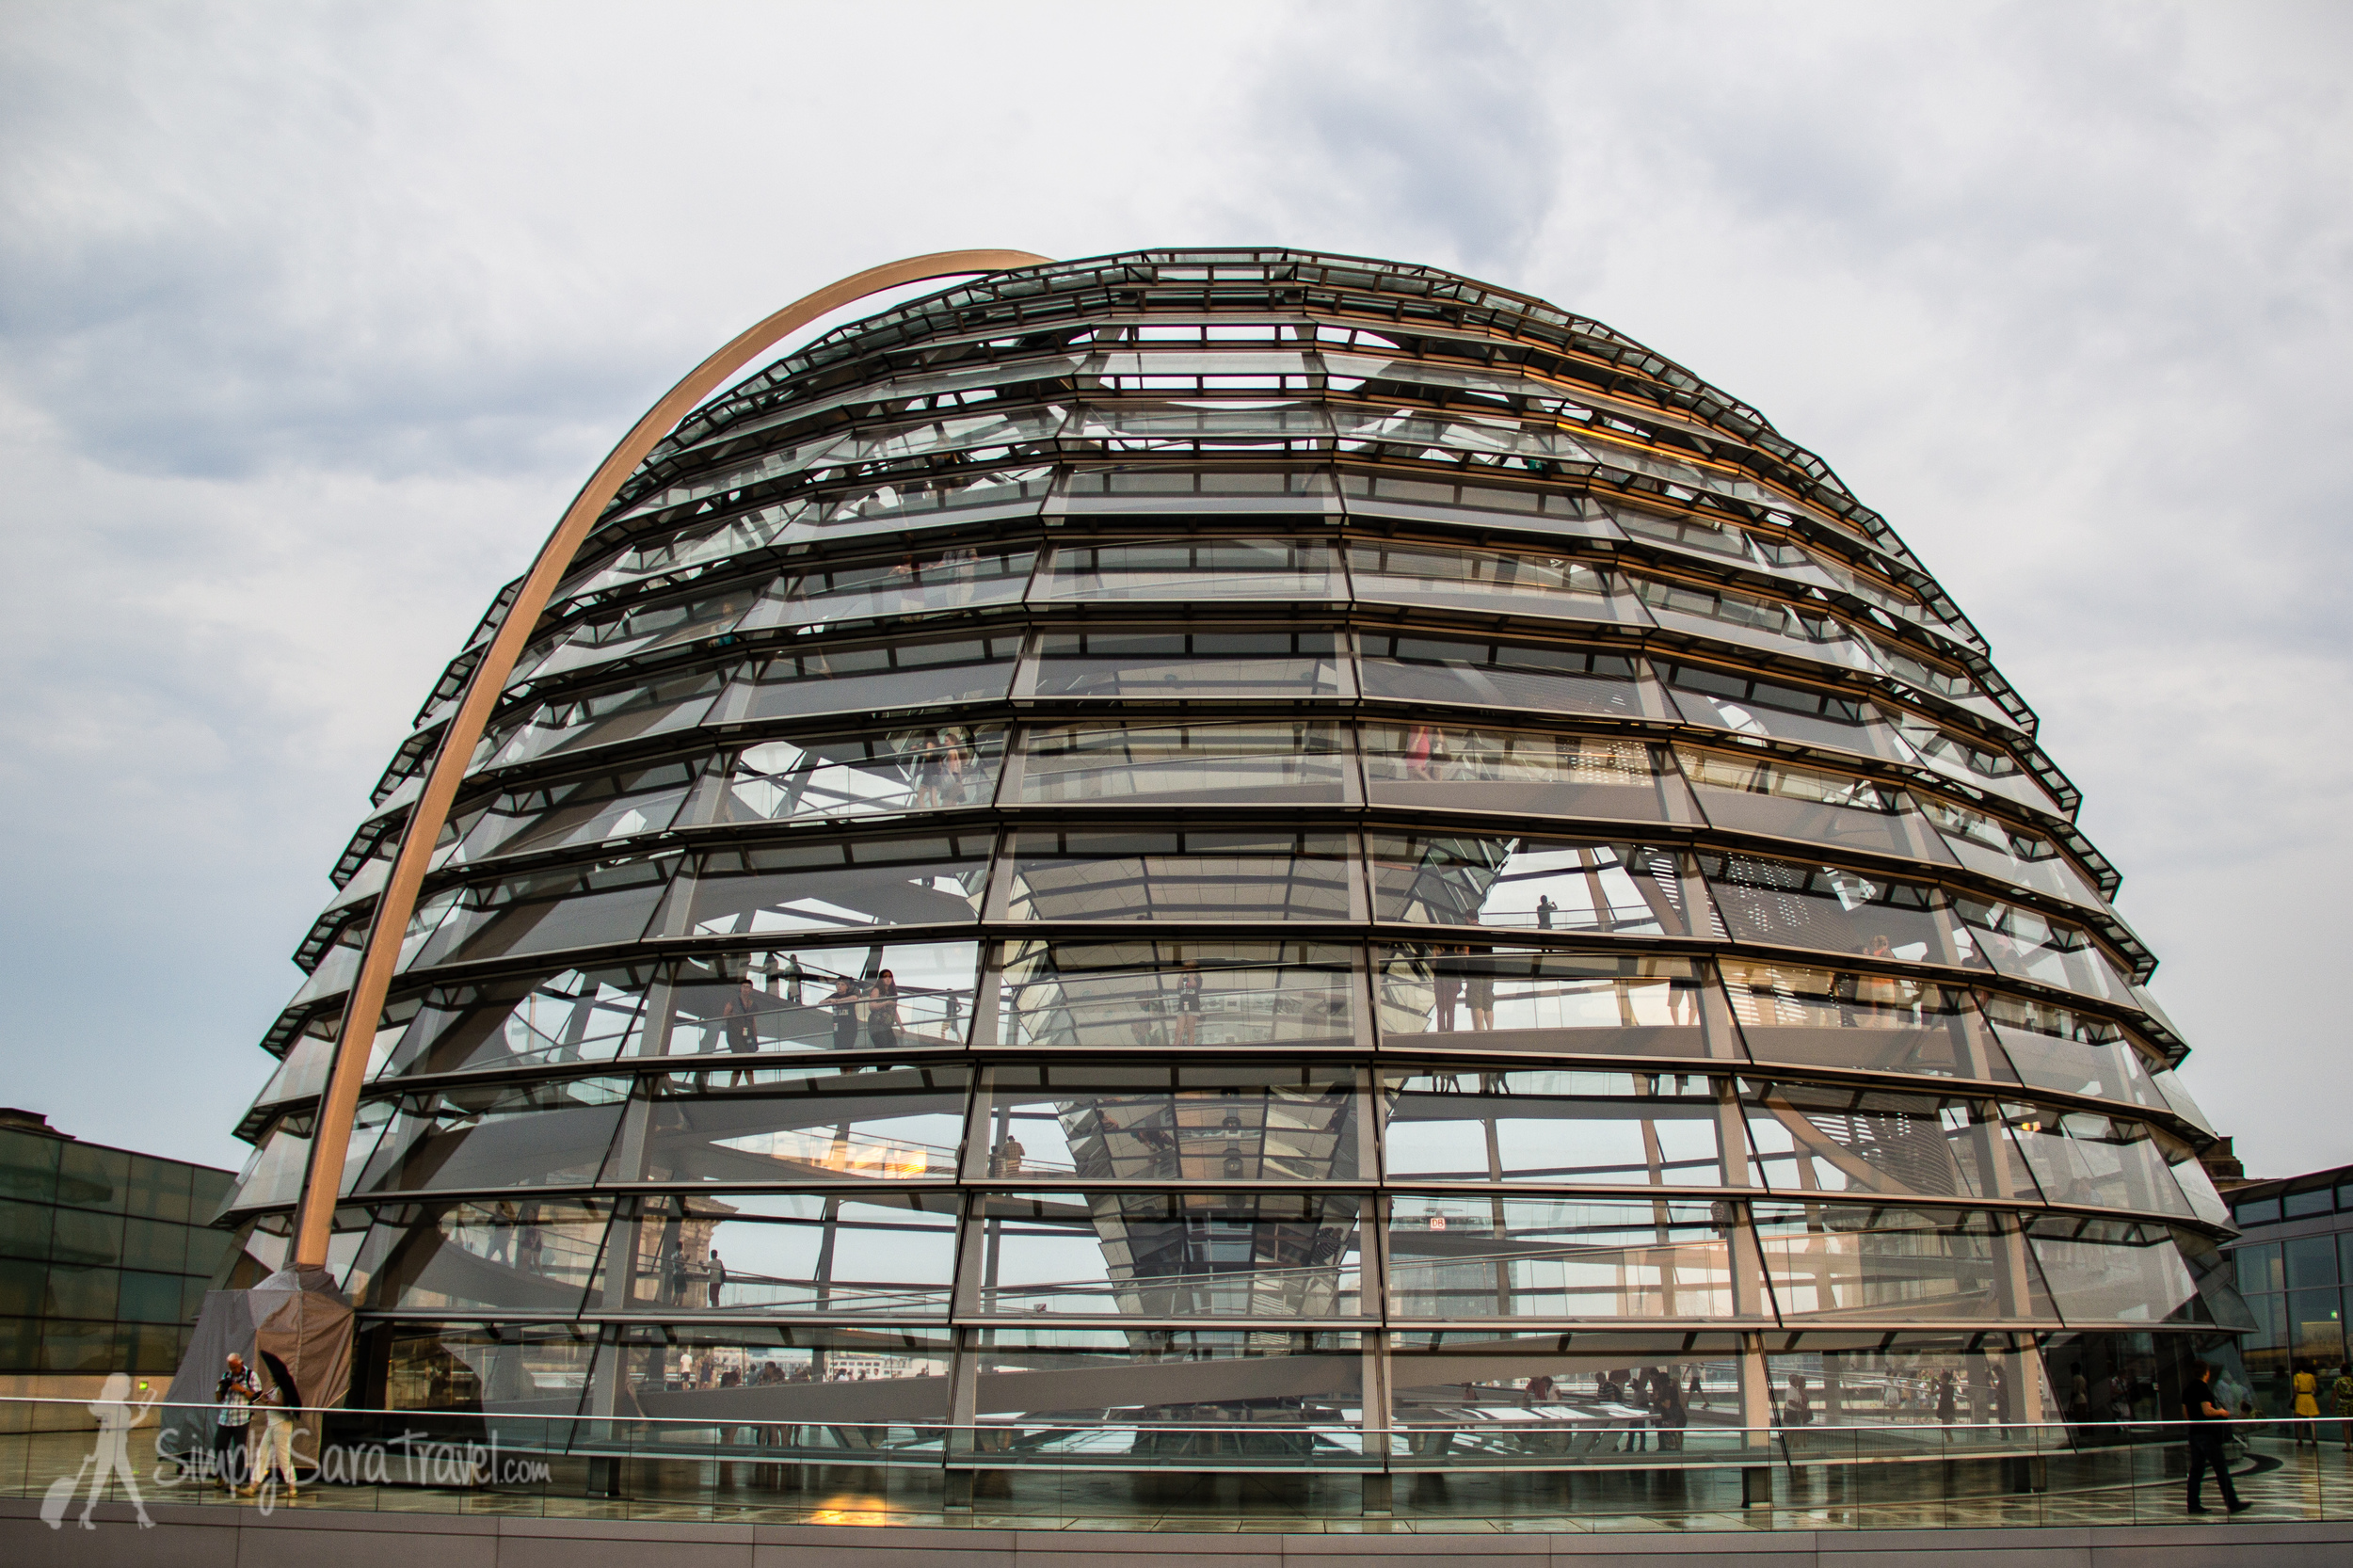 Glass dome of Berlin's Reichstag